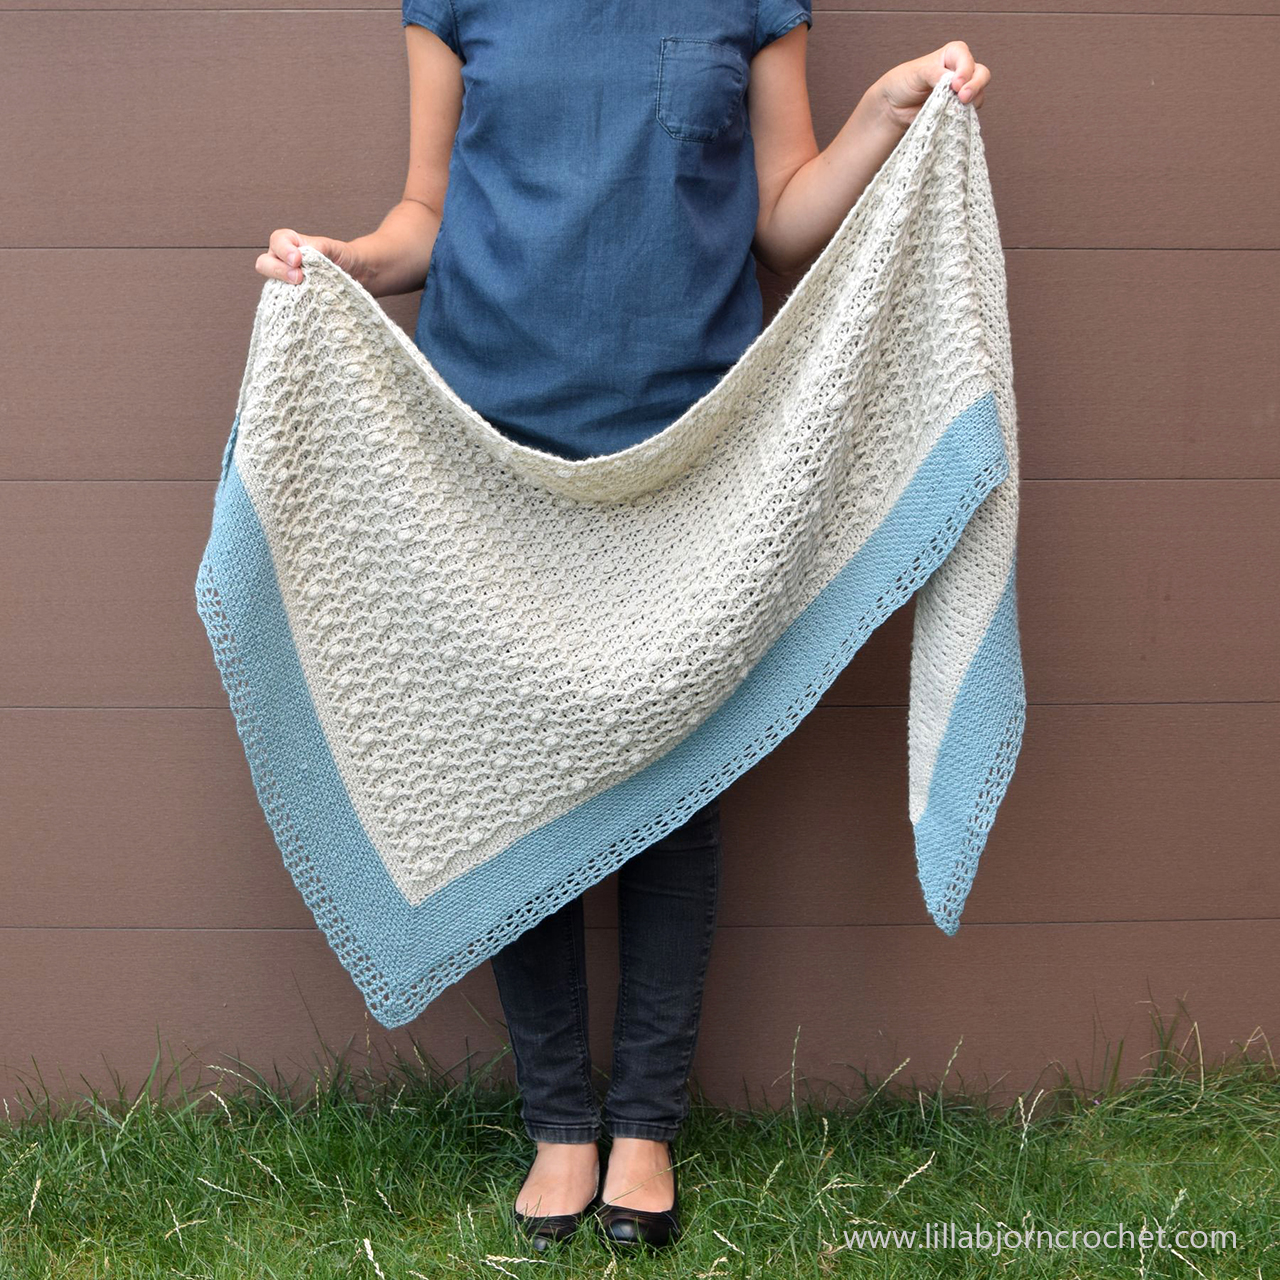 """7e74cf8ce01 Shells and Stones Shawl has an asymmetrical triangular shape with gentle  cables and bobbles placed over airy """"linen stitch"""" fabric."""